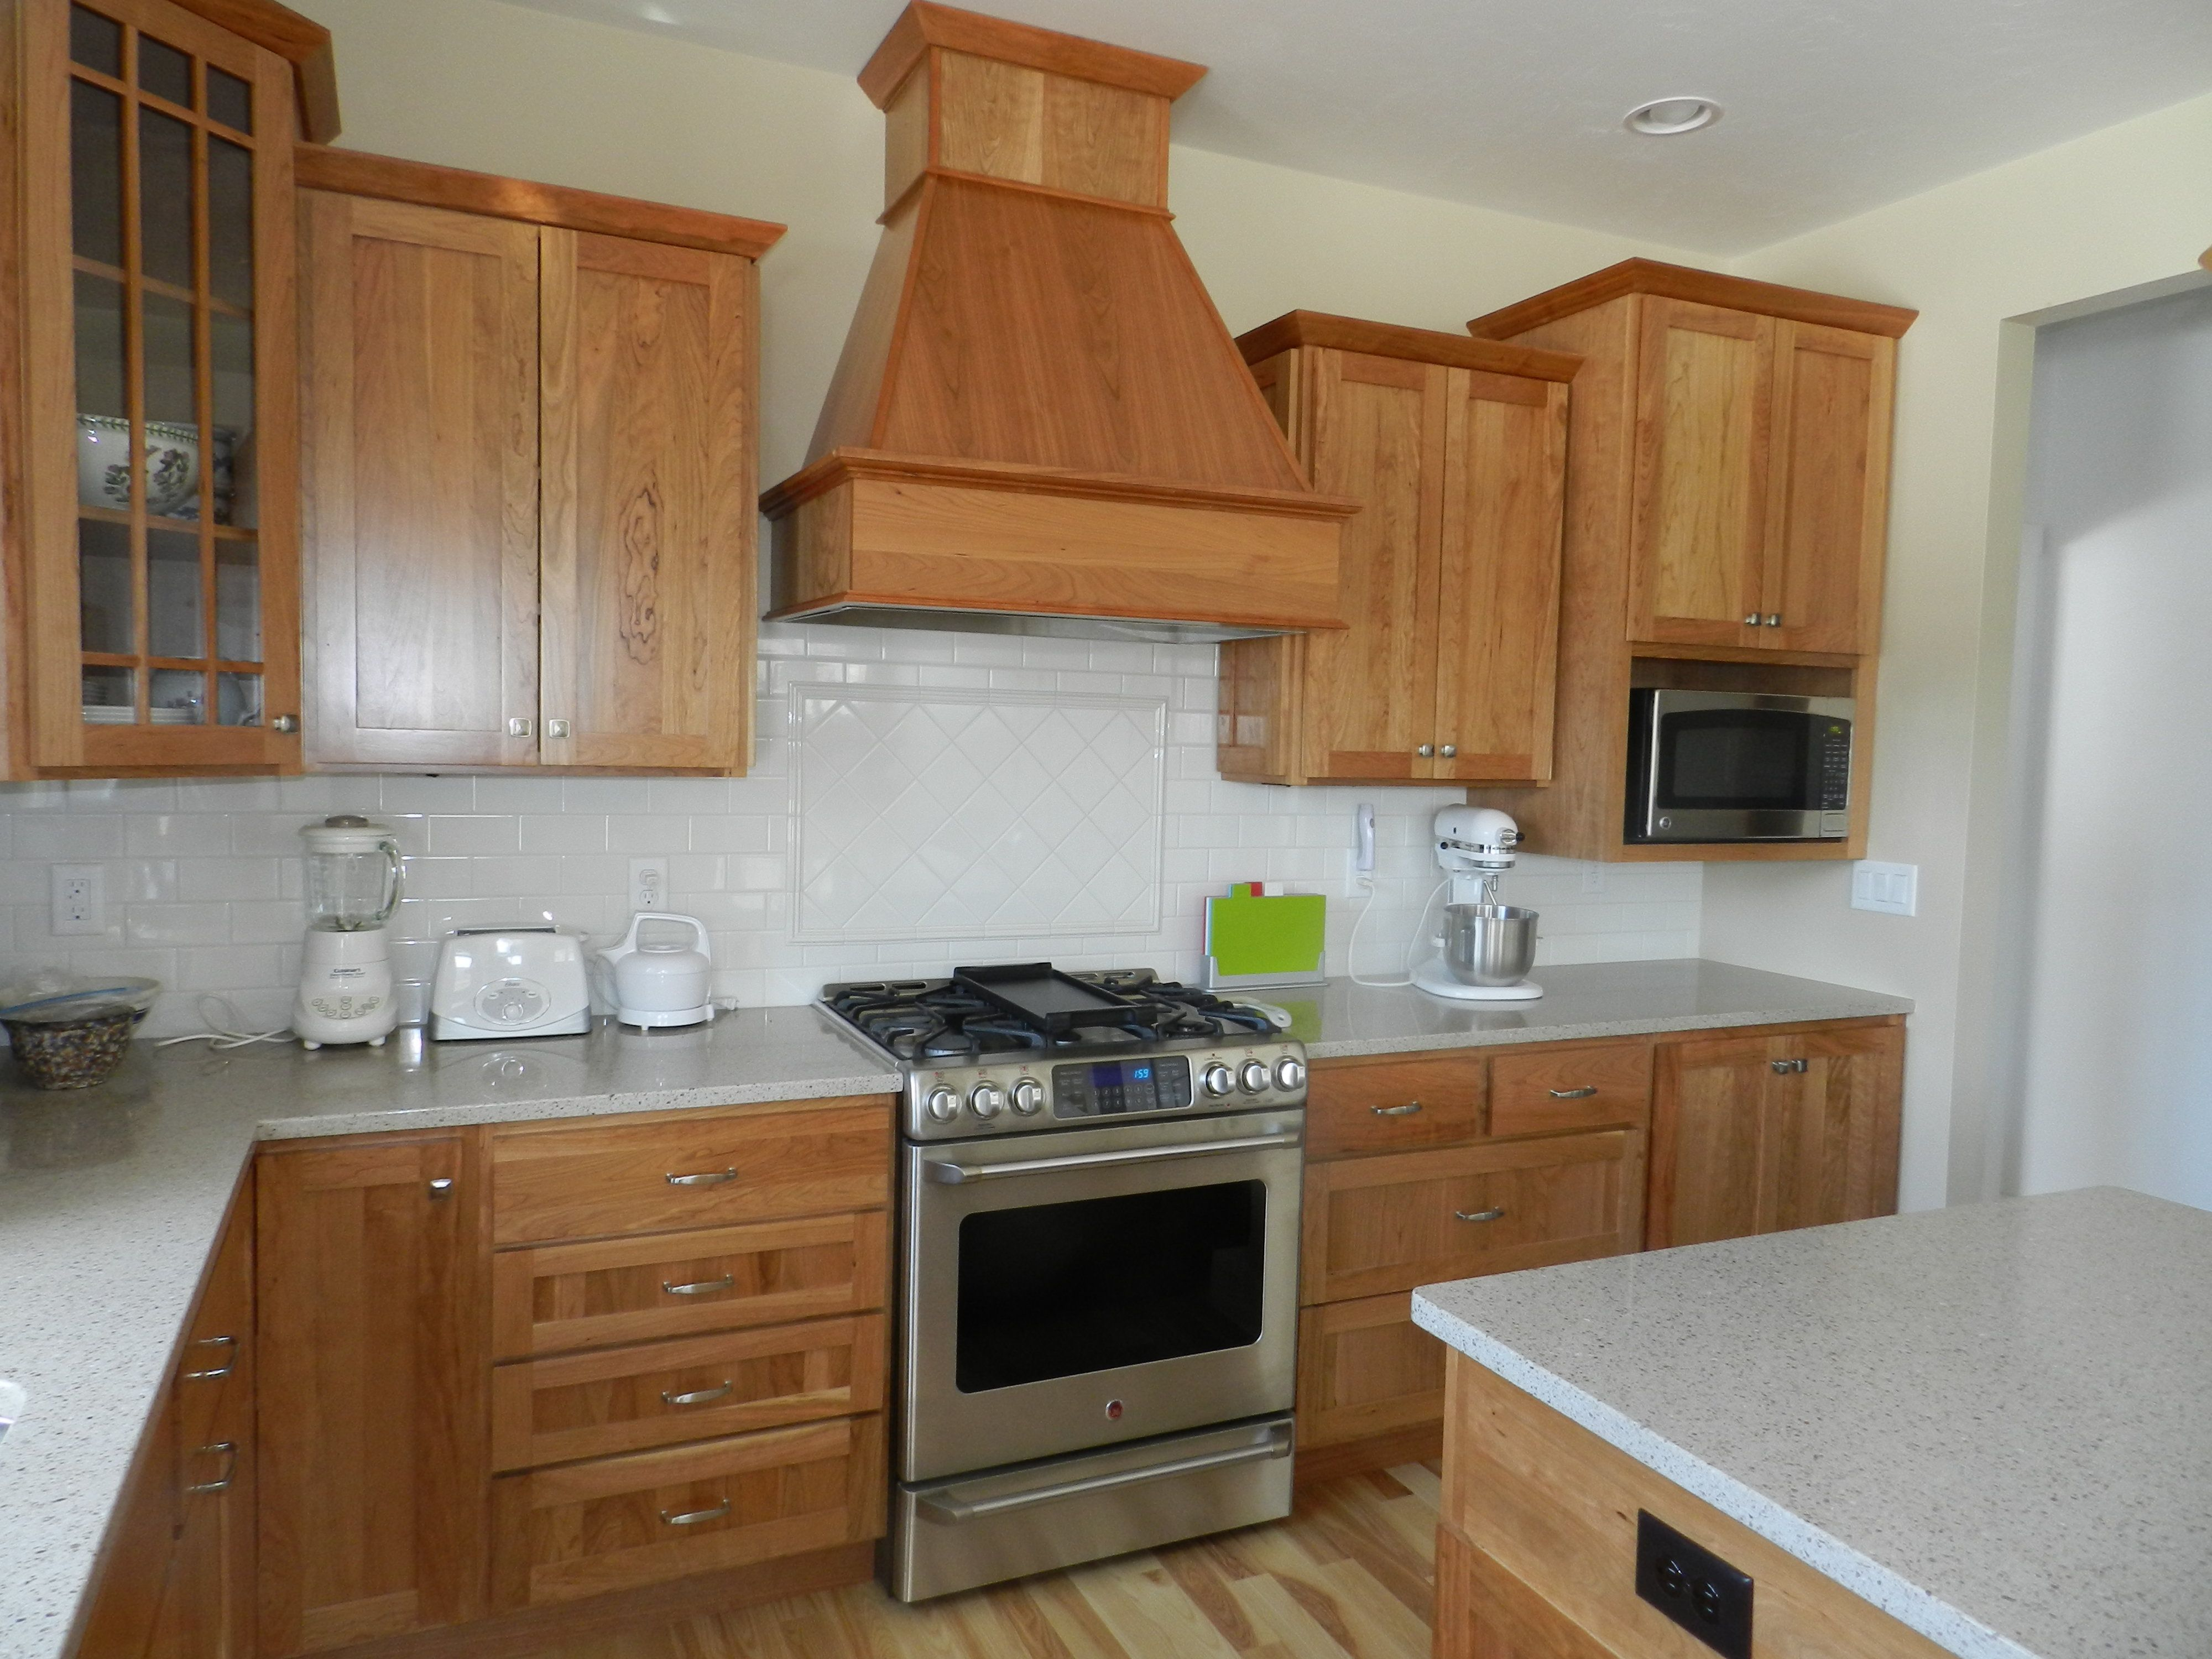 Great Northern Cabinetry, Wood Species: Cherry, Stain: Natural, Door Style:  Shakertown IV, Zodiaq Countertops